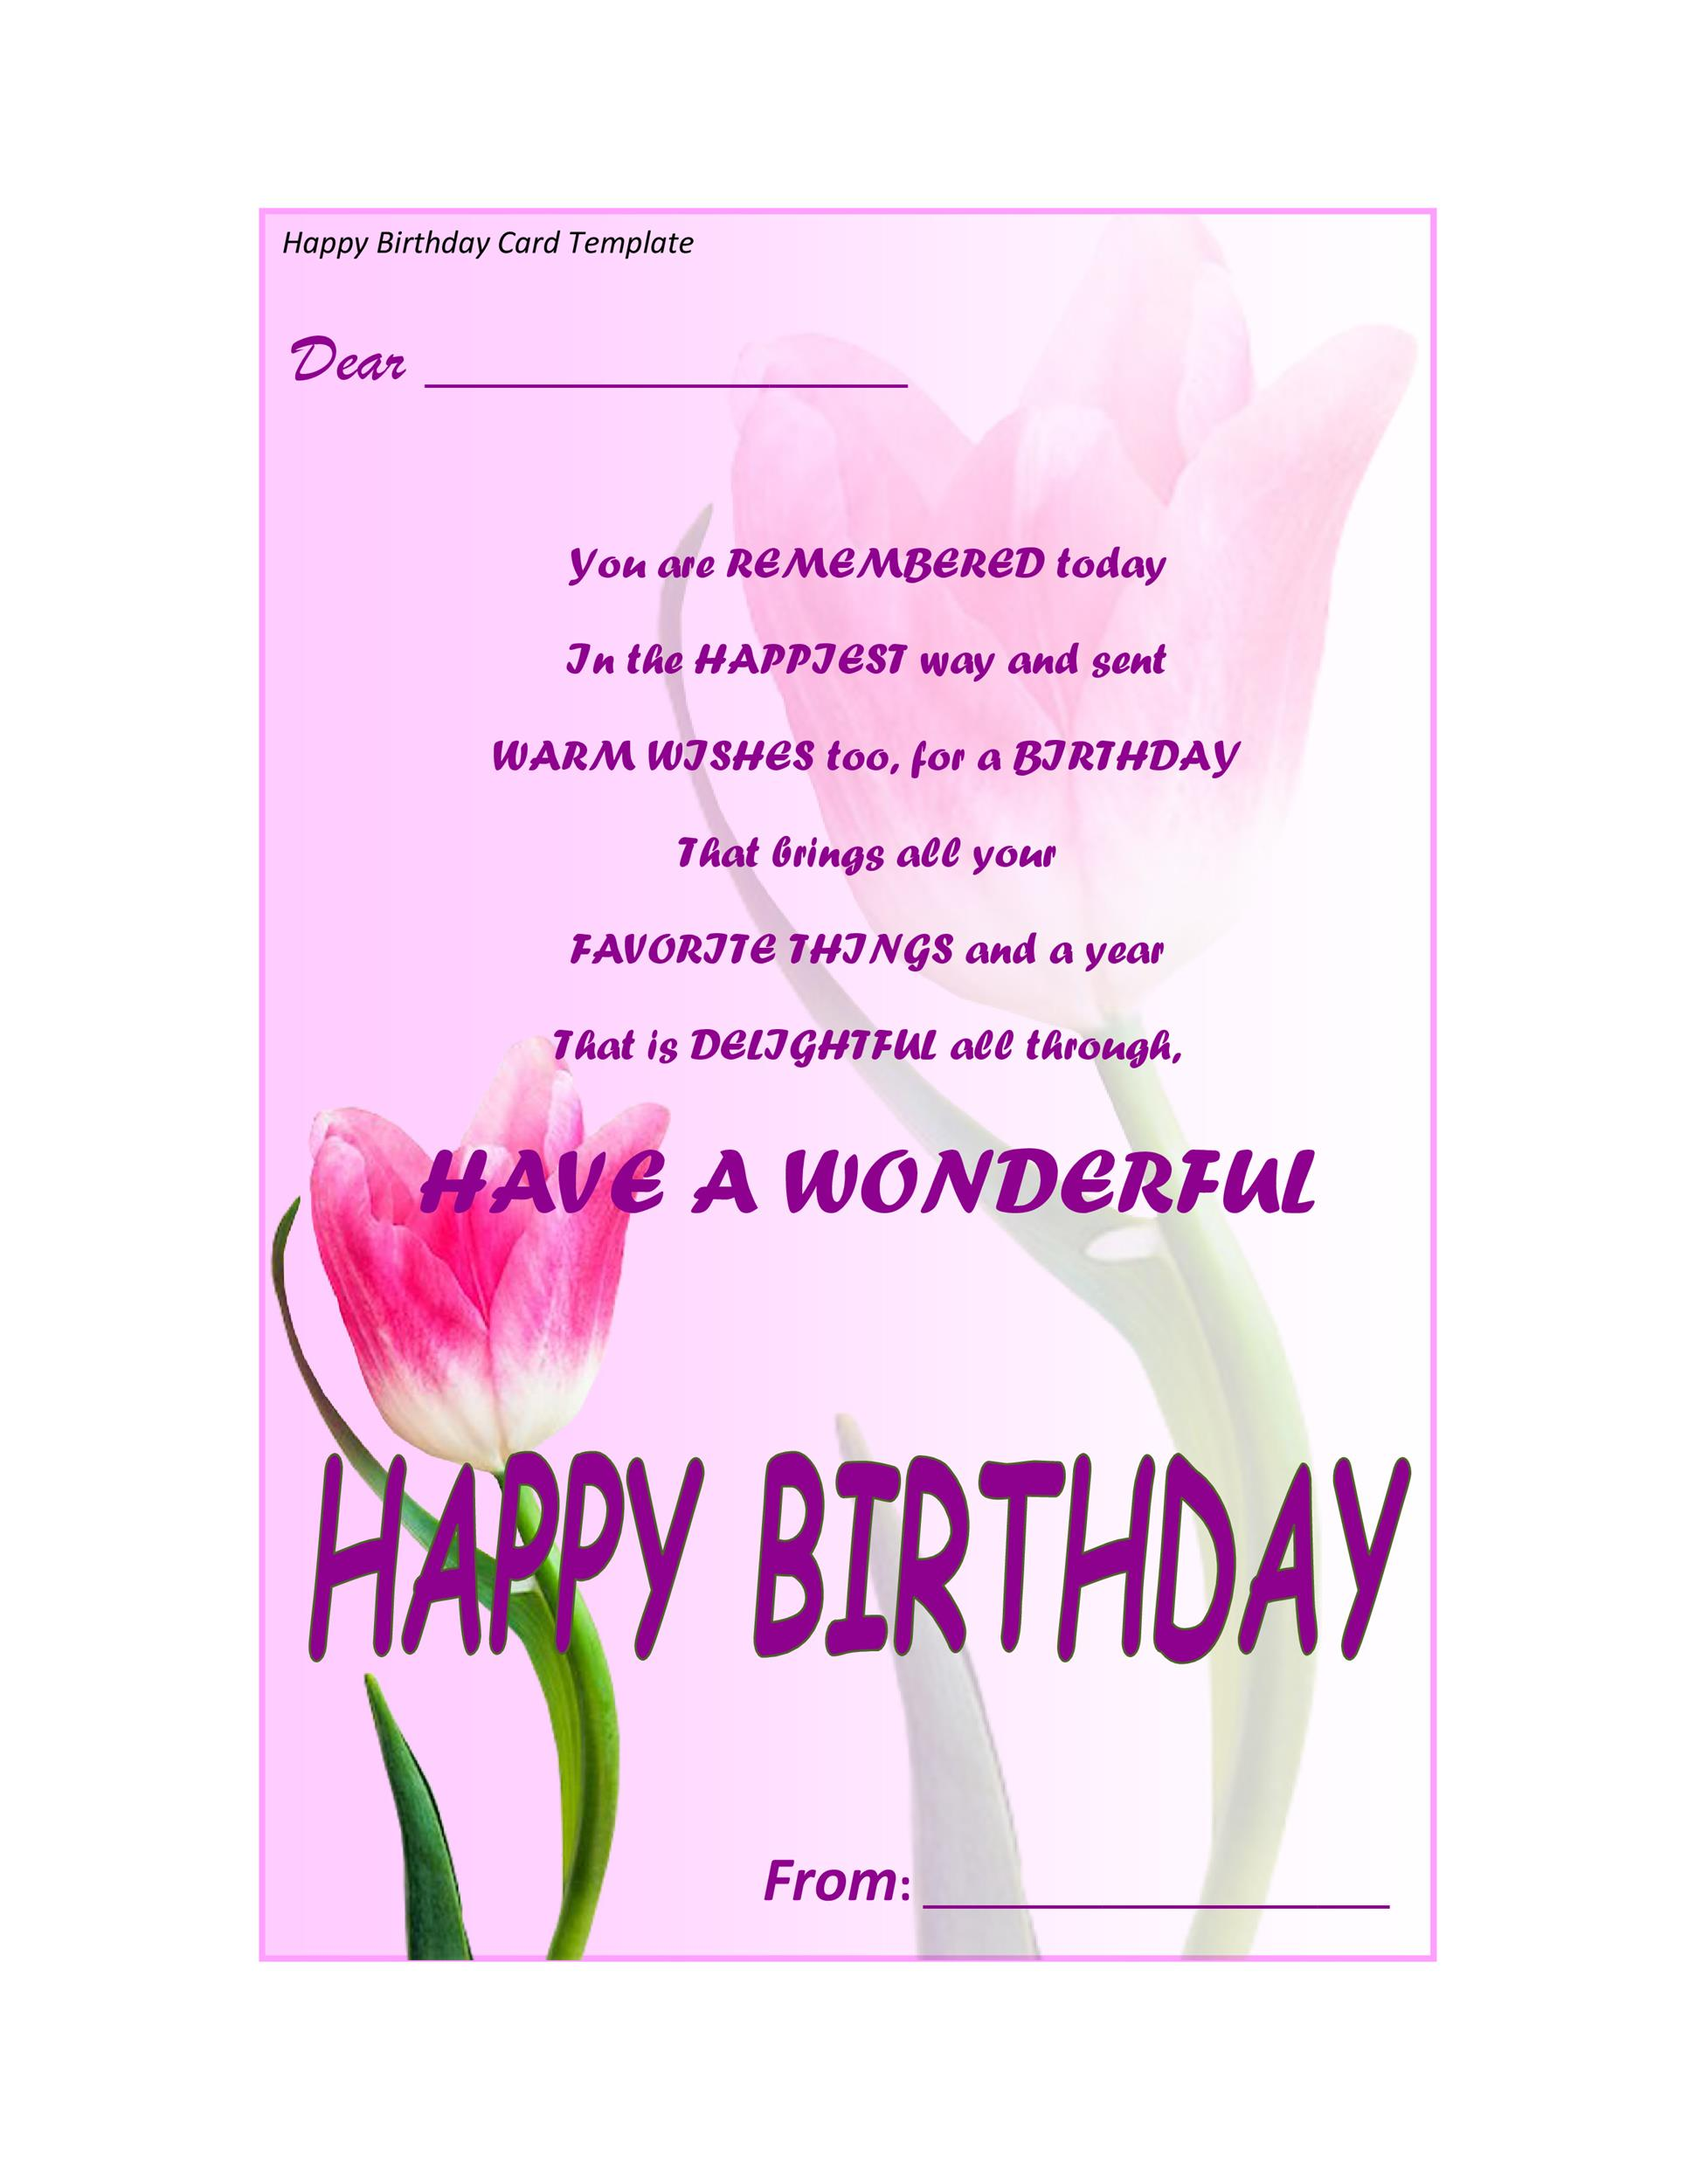 Free Birthday Card Template 32 Printable